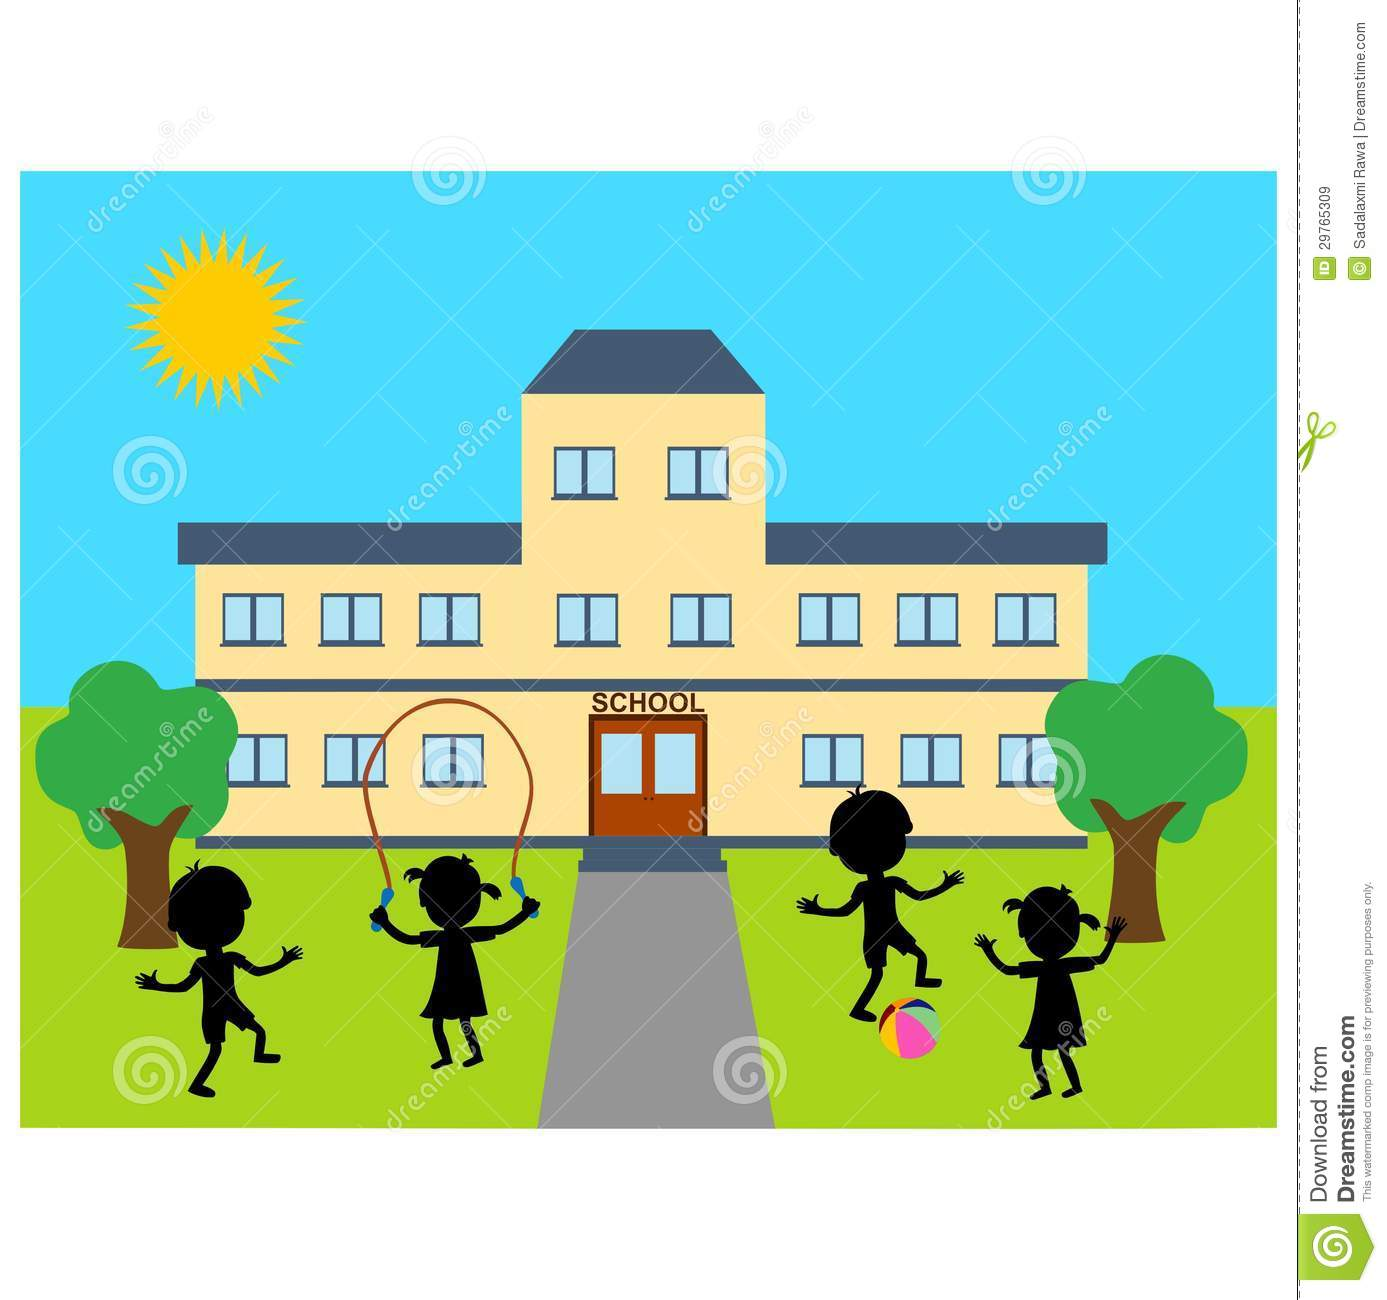 school building stock vector illustration of path outside 29765309 rh dreamstime com school building clipart images school building clip art free